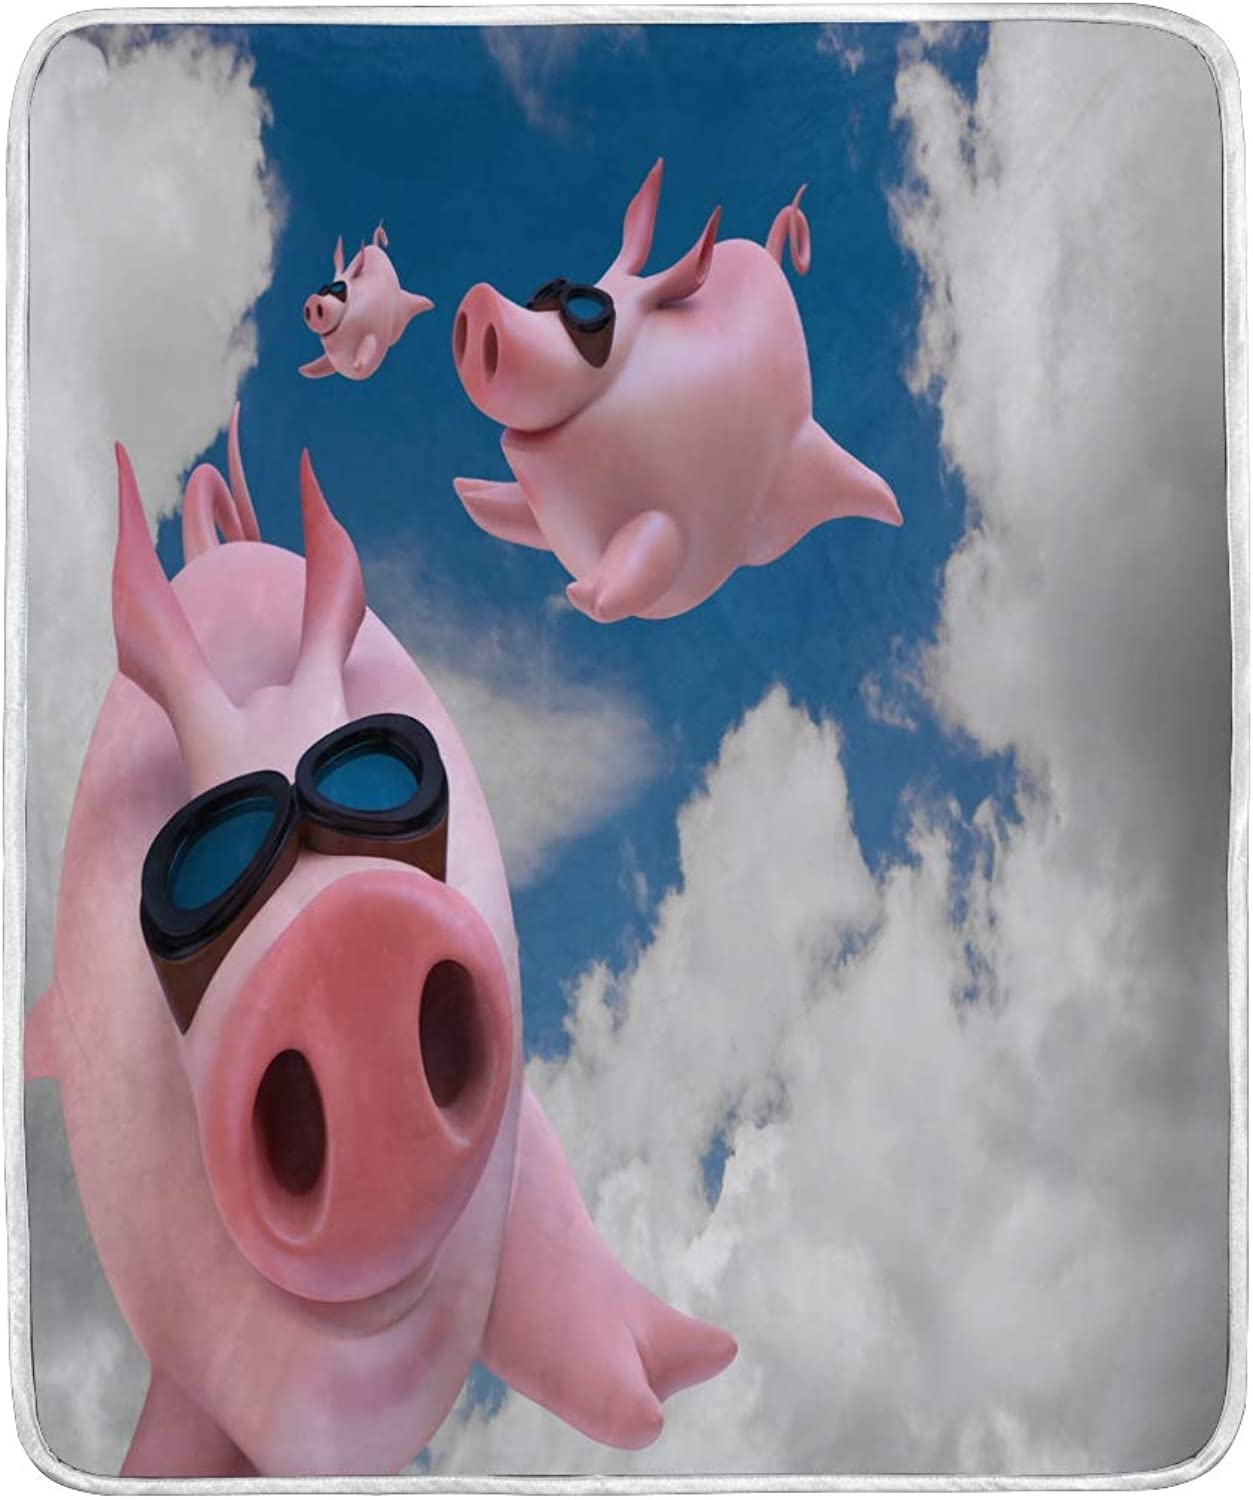 WXLIFE Cute Pig Piggy Flyng Sky Soft Warm Blanket for Bed Couch Sofa Lightweight Travelling Camping 60 x 50 Inch Throw Size for Kids Girl Boy Women